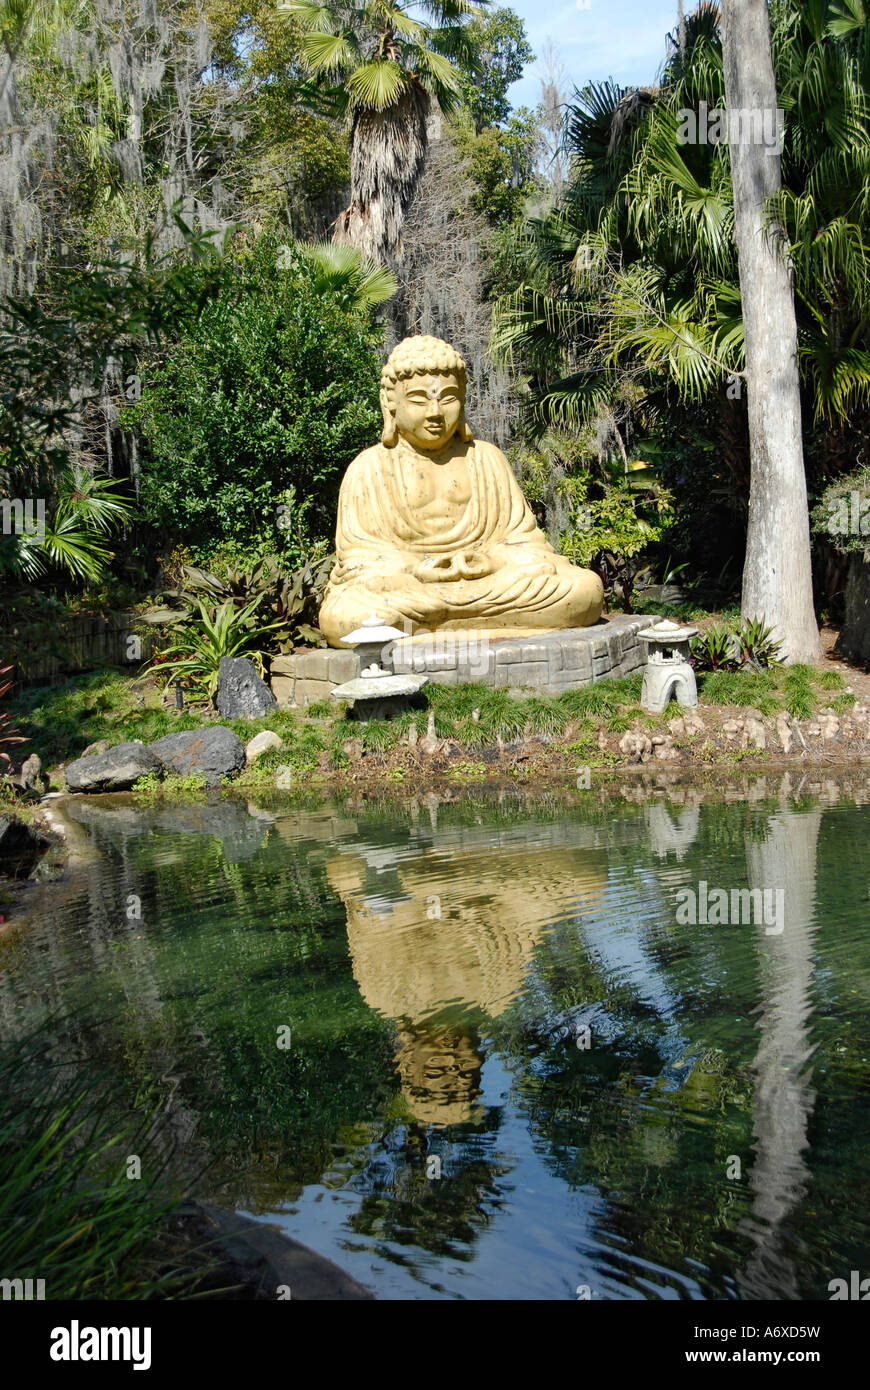 buddha in japanese garden in botanical gardens at cypress gardens